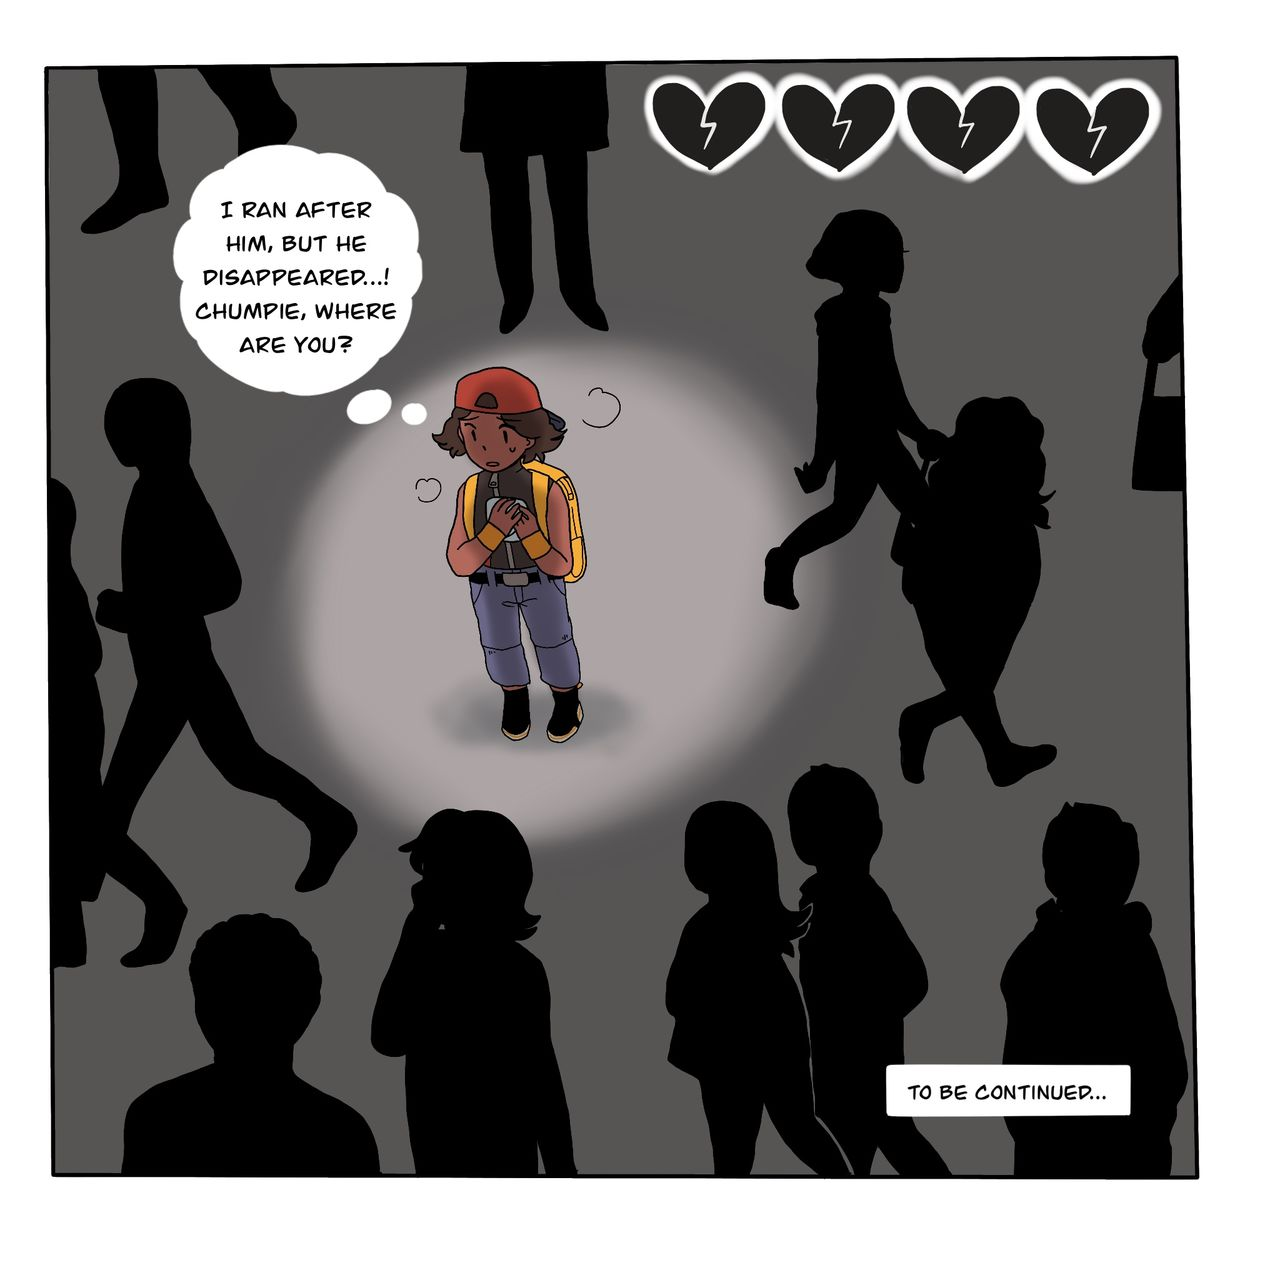 """The webcomic shows the main character standing in a busy square, with figures all around her. Four heart break icons can be seen at the top of the image in a videogame style. She is terribly worried as she her dog has disappeared after chasing a pigeon. The bottom left shows a text box with the words, 'To be continued…"""""""